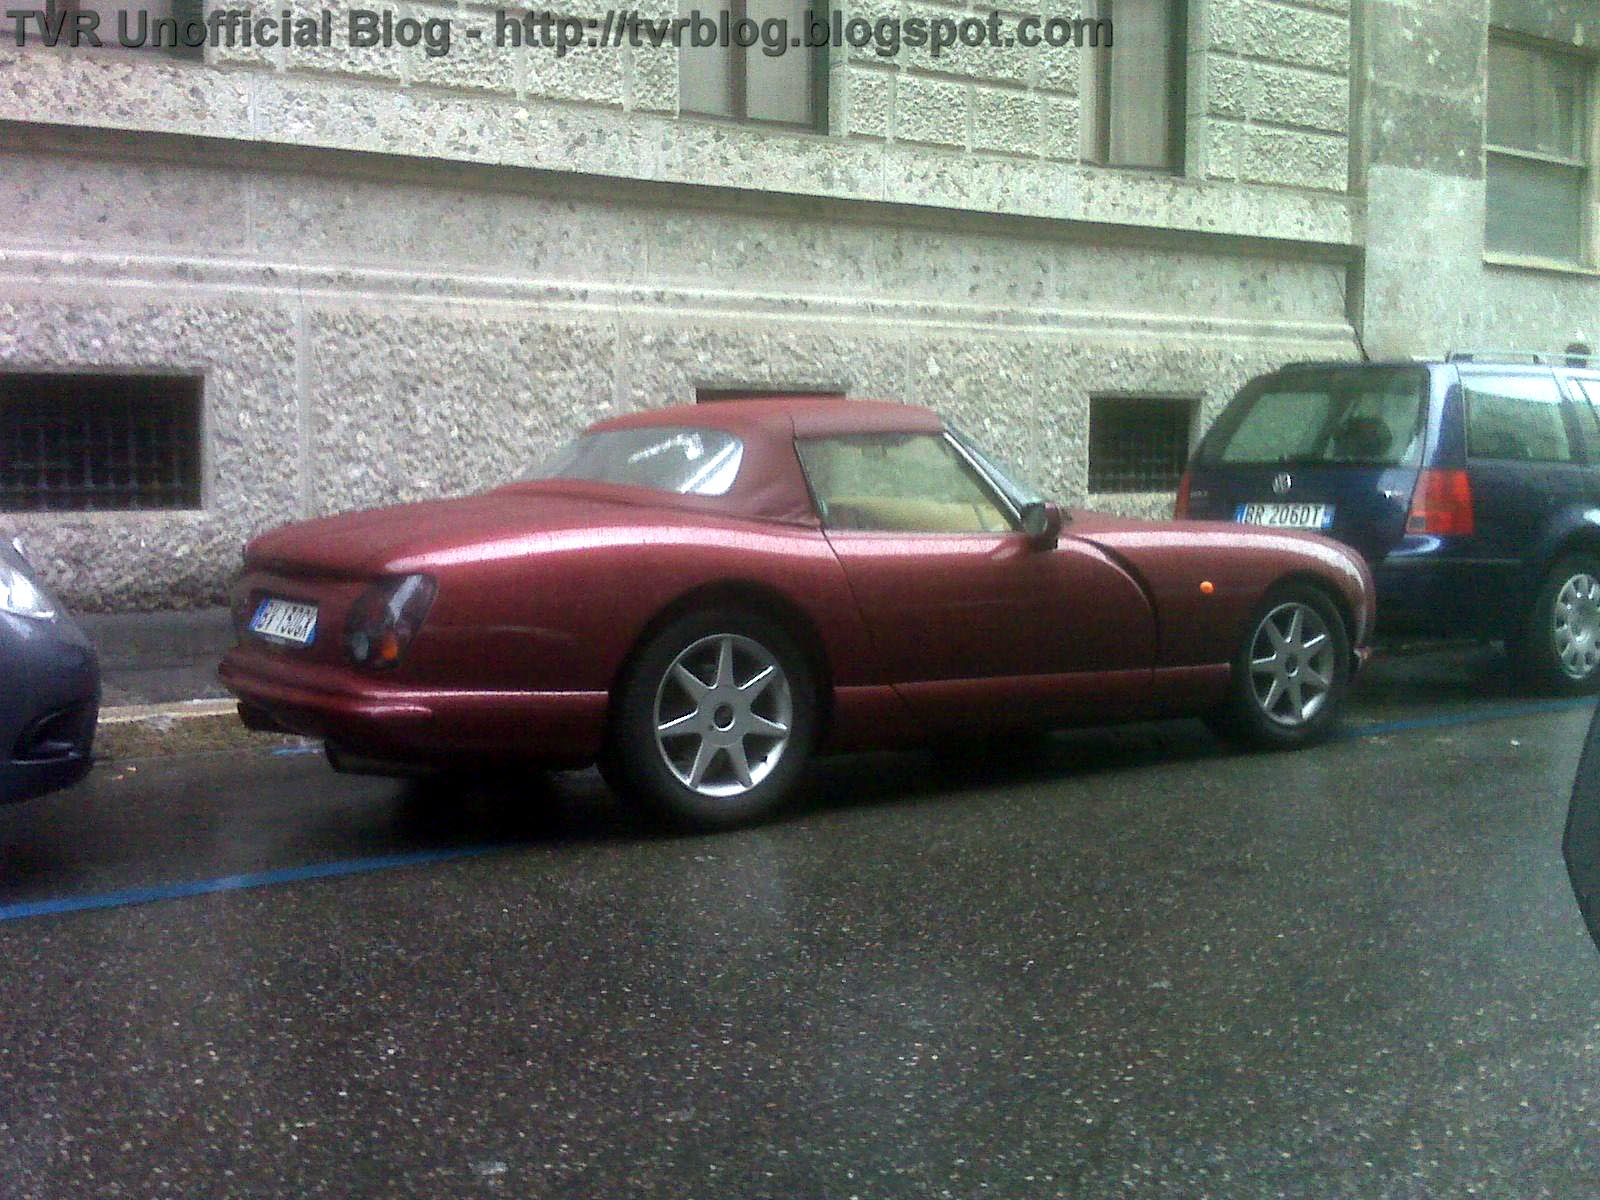 tvr_chimaera-500_lhd_tvrblog_1-1 Amazing Tvr Griffith Left Hand Drive Cars Trend